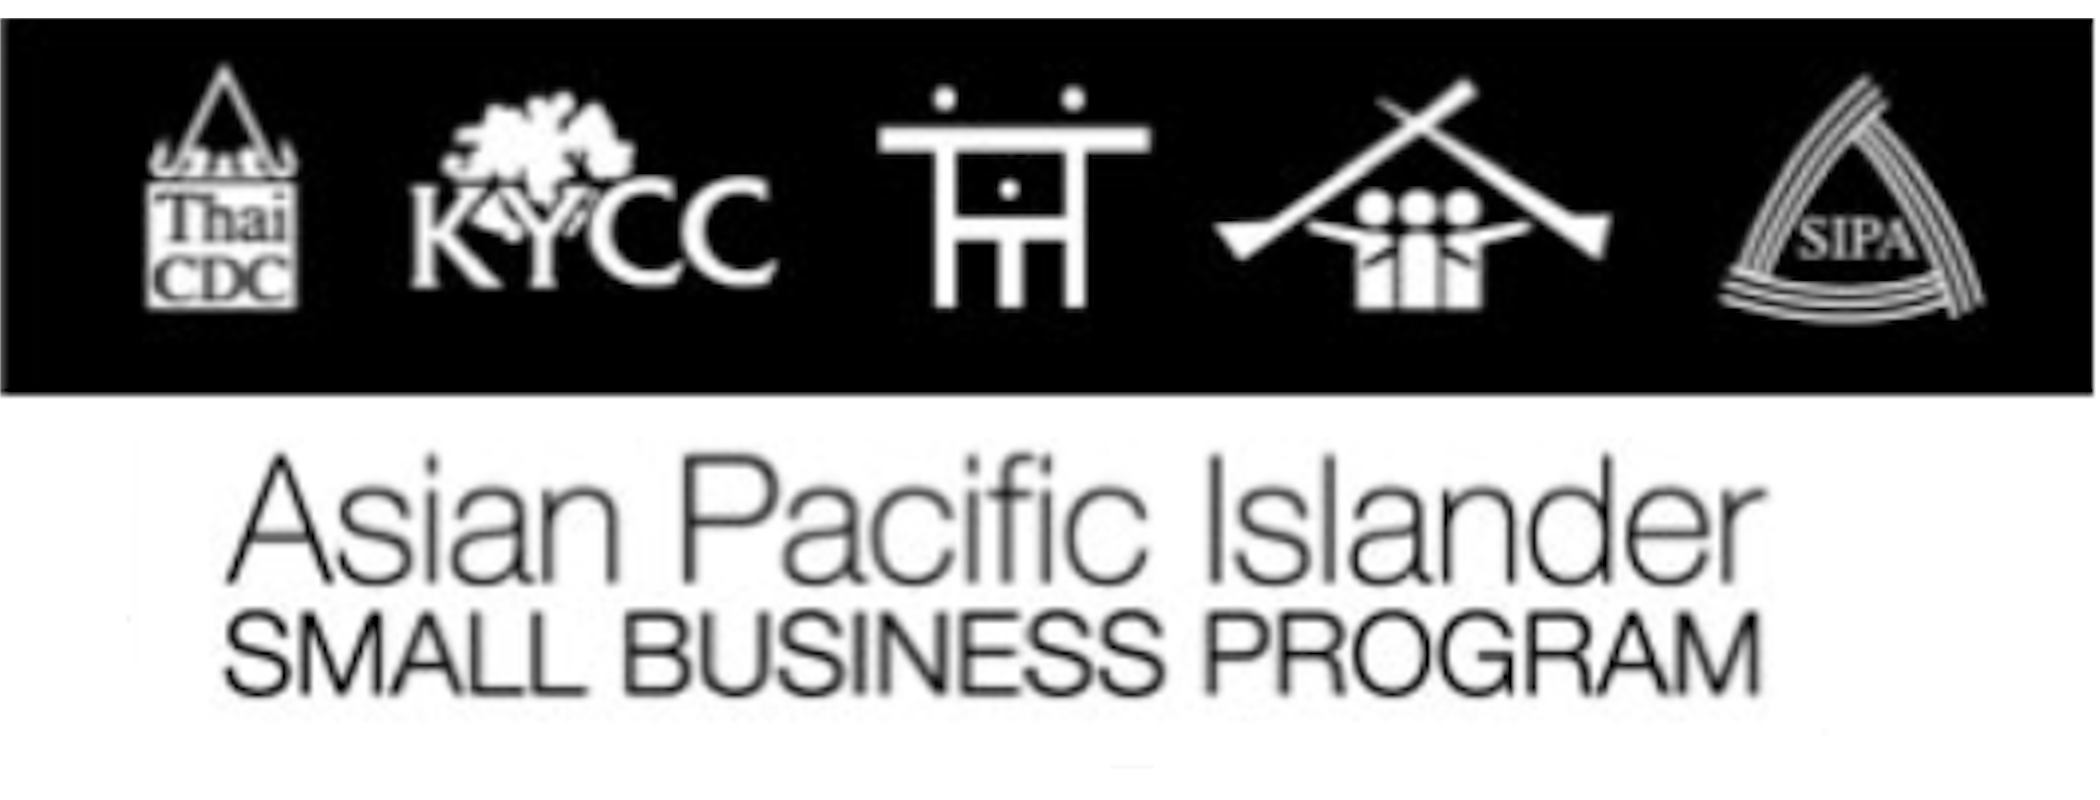 - Asian Pacific Islander Small Business Program231 E. 3rd St., Suite G-106Los Angeles 90013(213) 473-1605 | apisbp.org